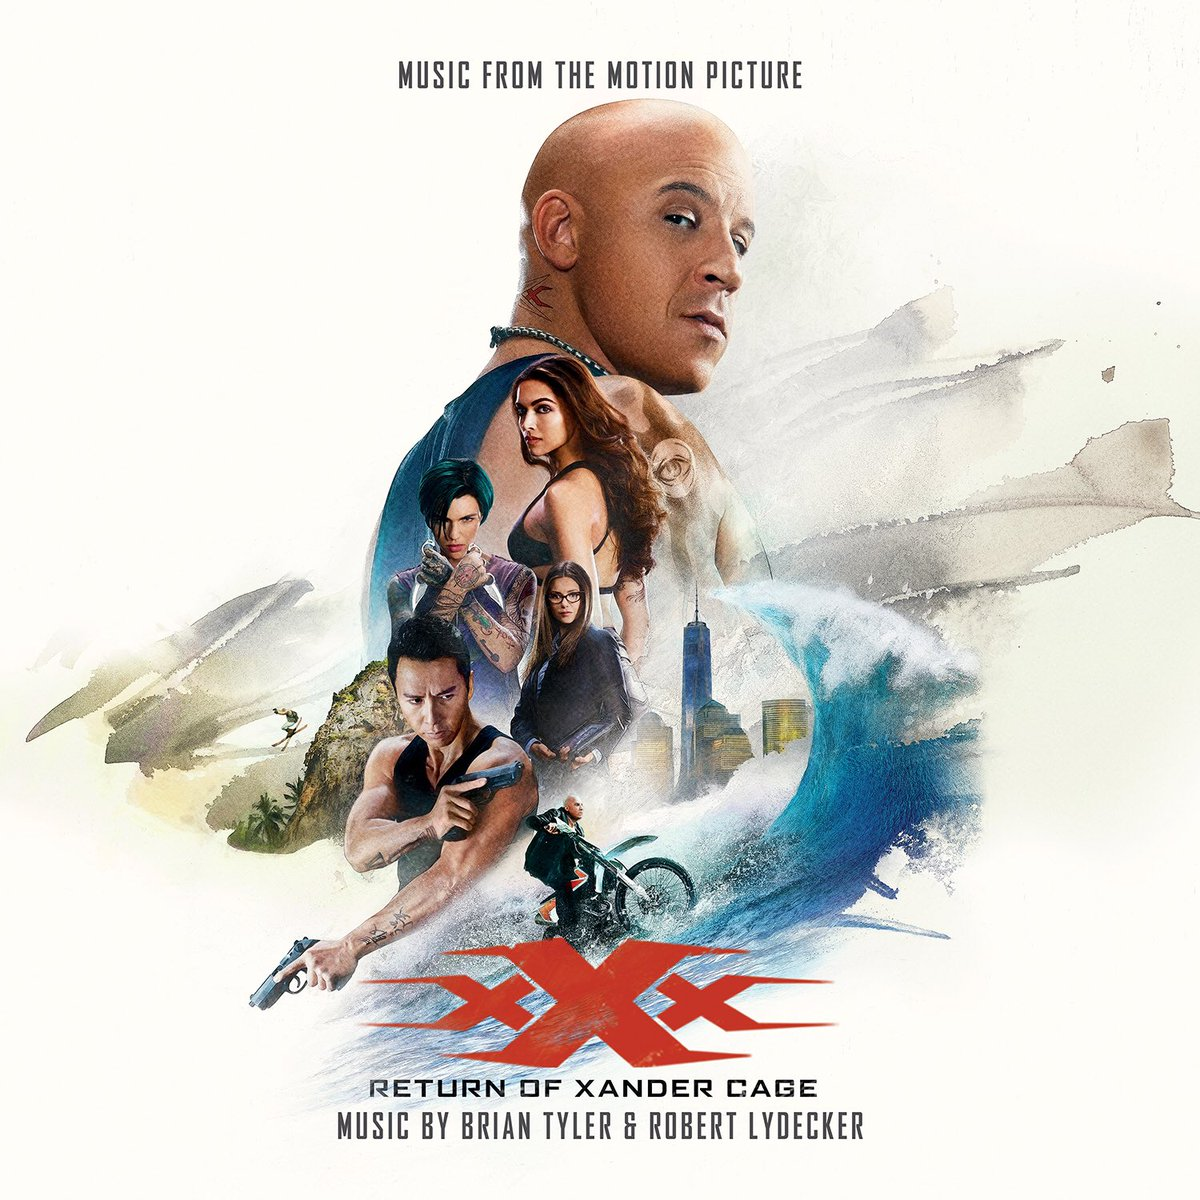 xxx the movie soundtrack